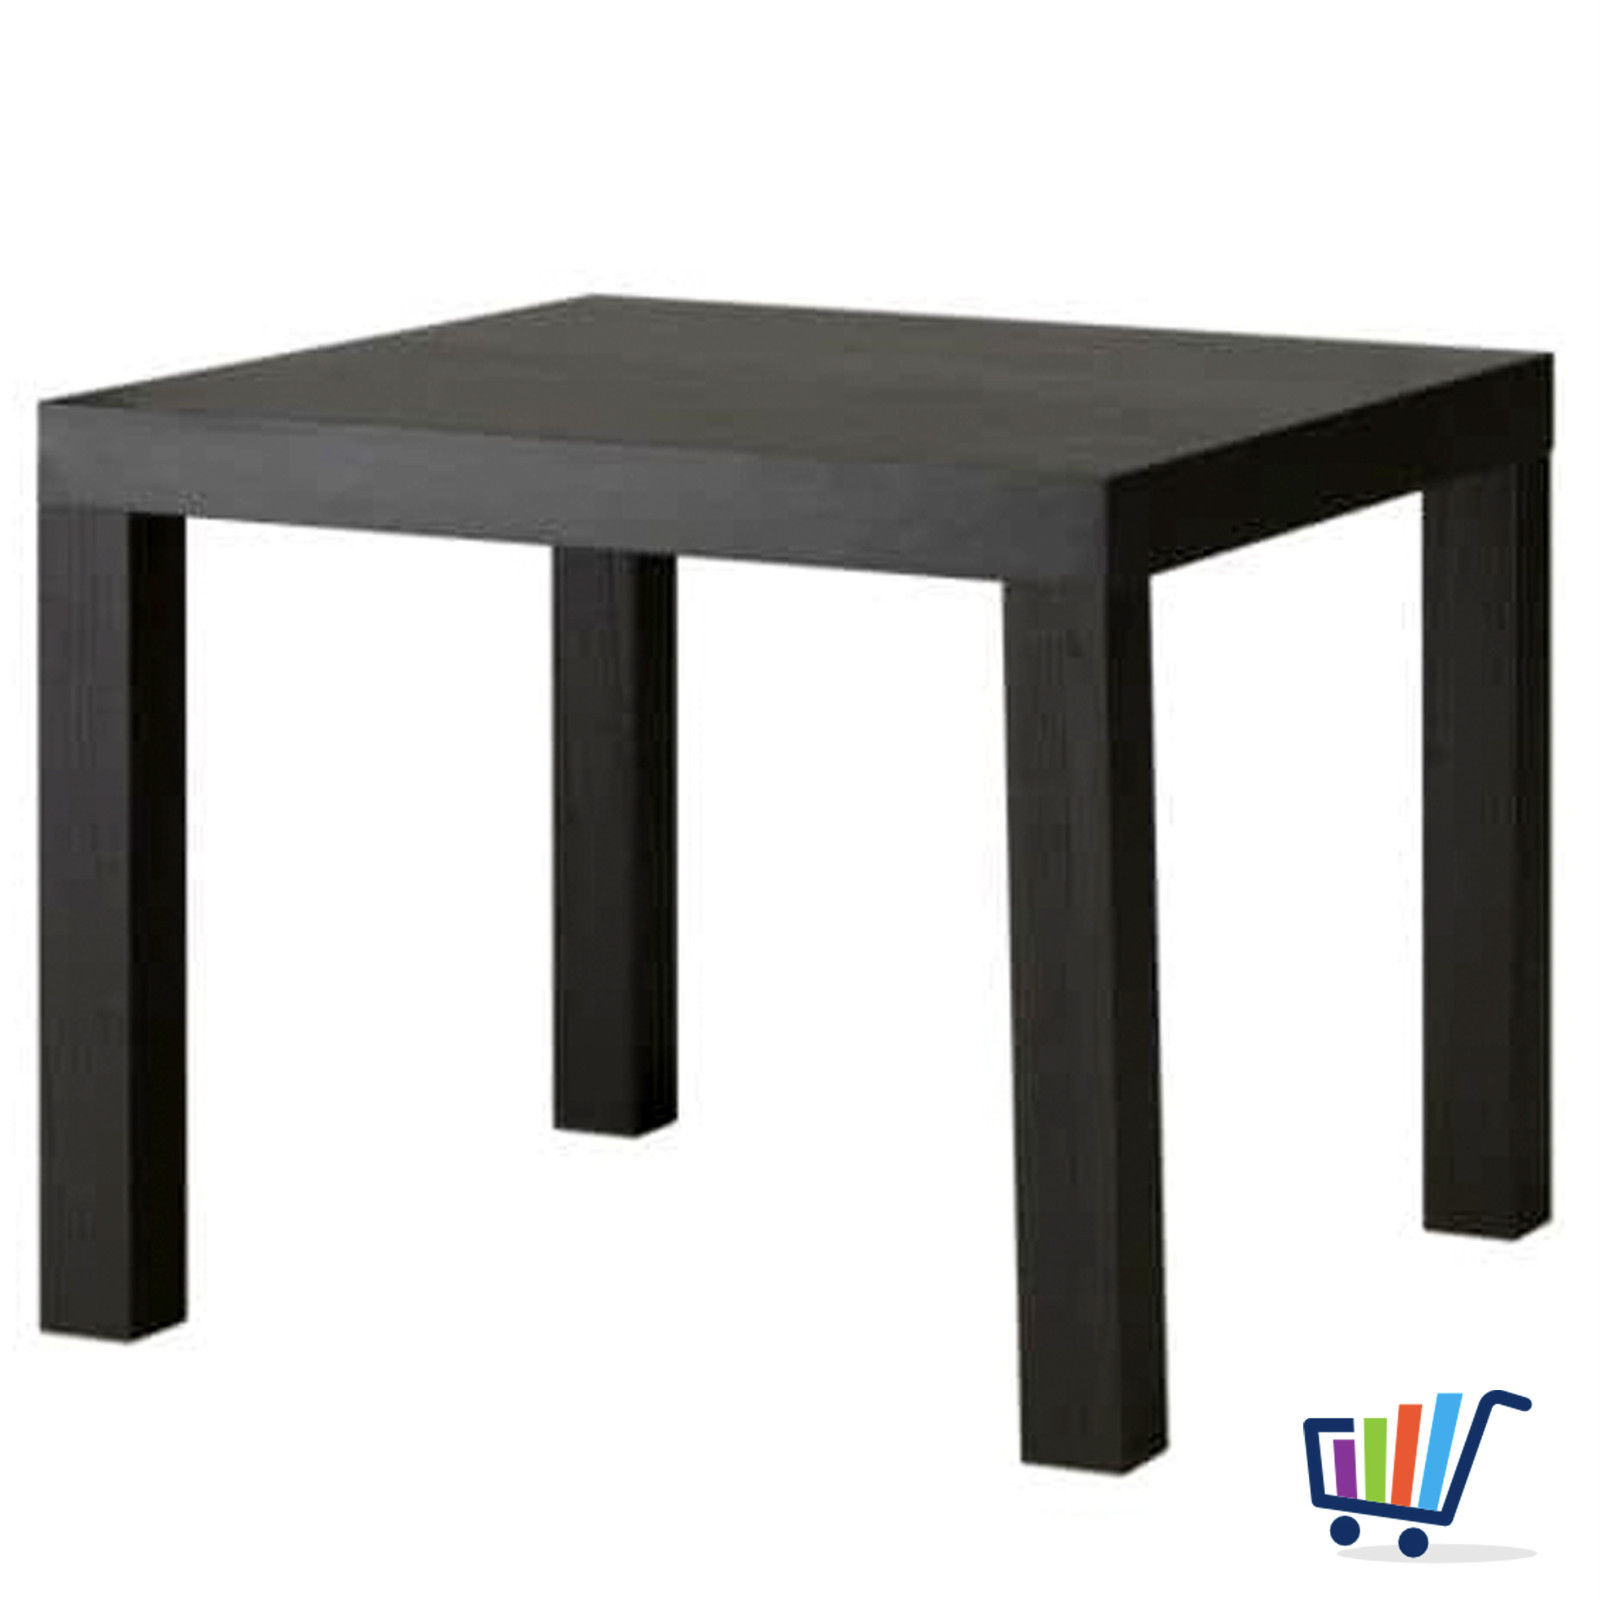 couchtisch lack latest ikea lack couchtisch massivholz couchtisch wei with couchtisch lack. Black Bedroom Furniture Sets. Home Design Ideas